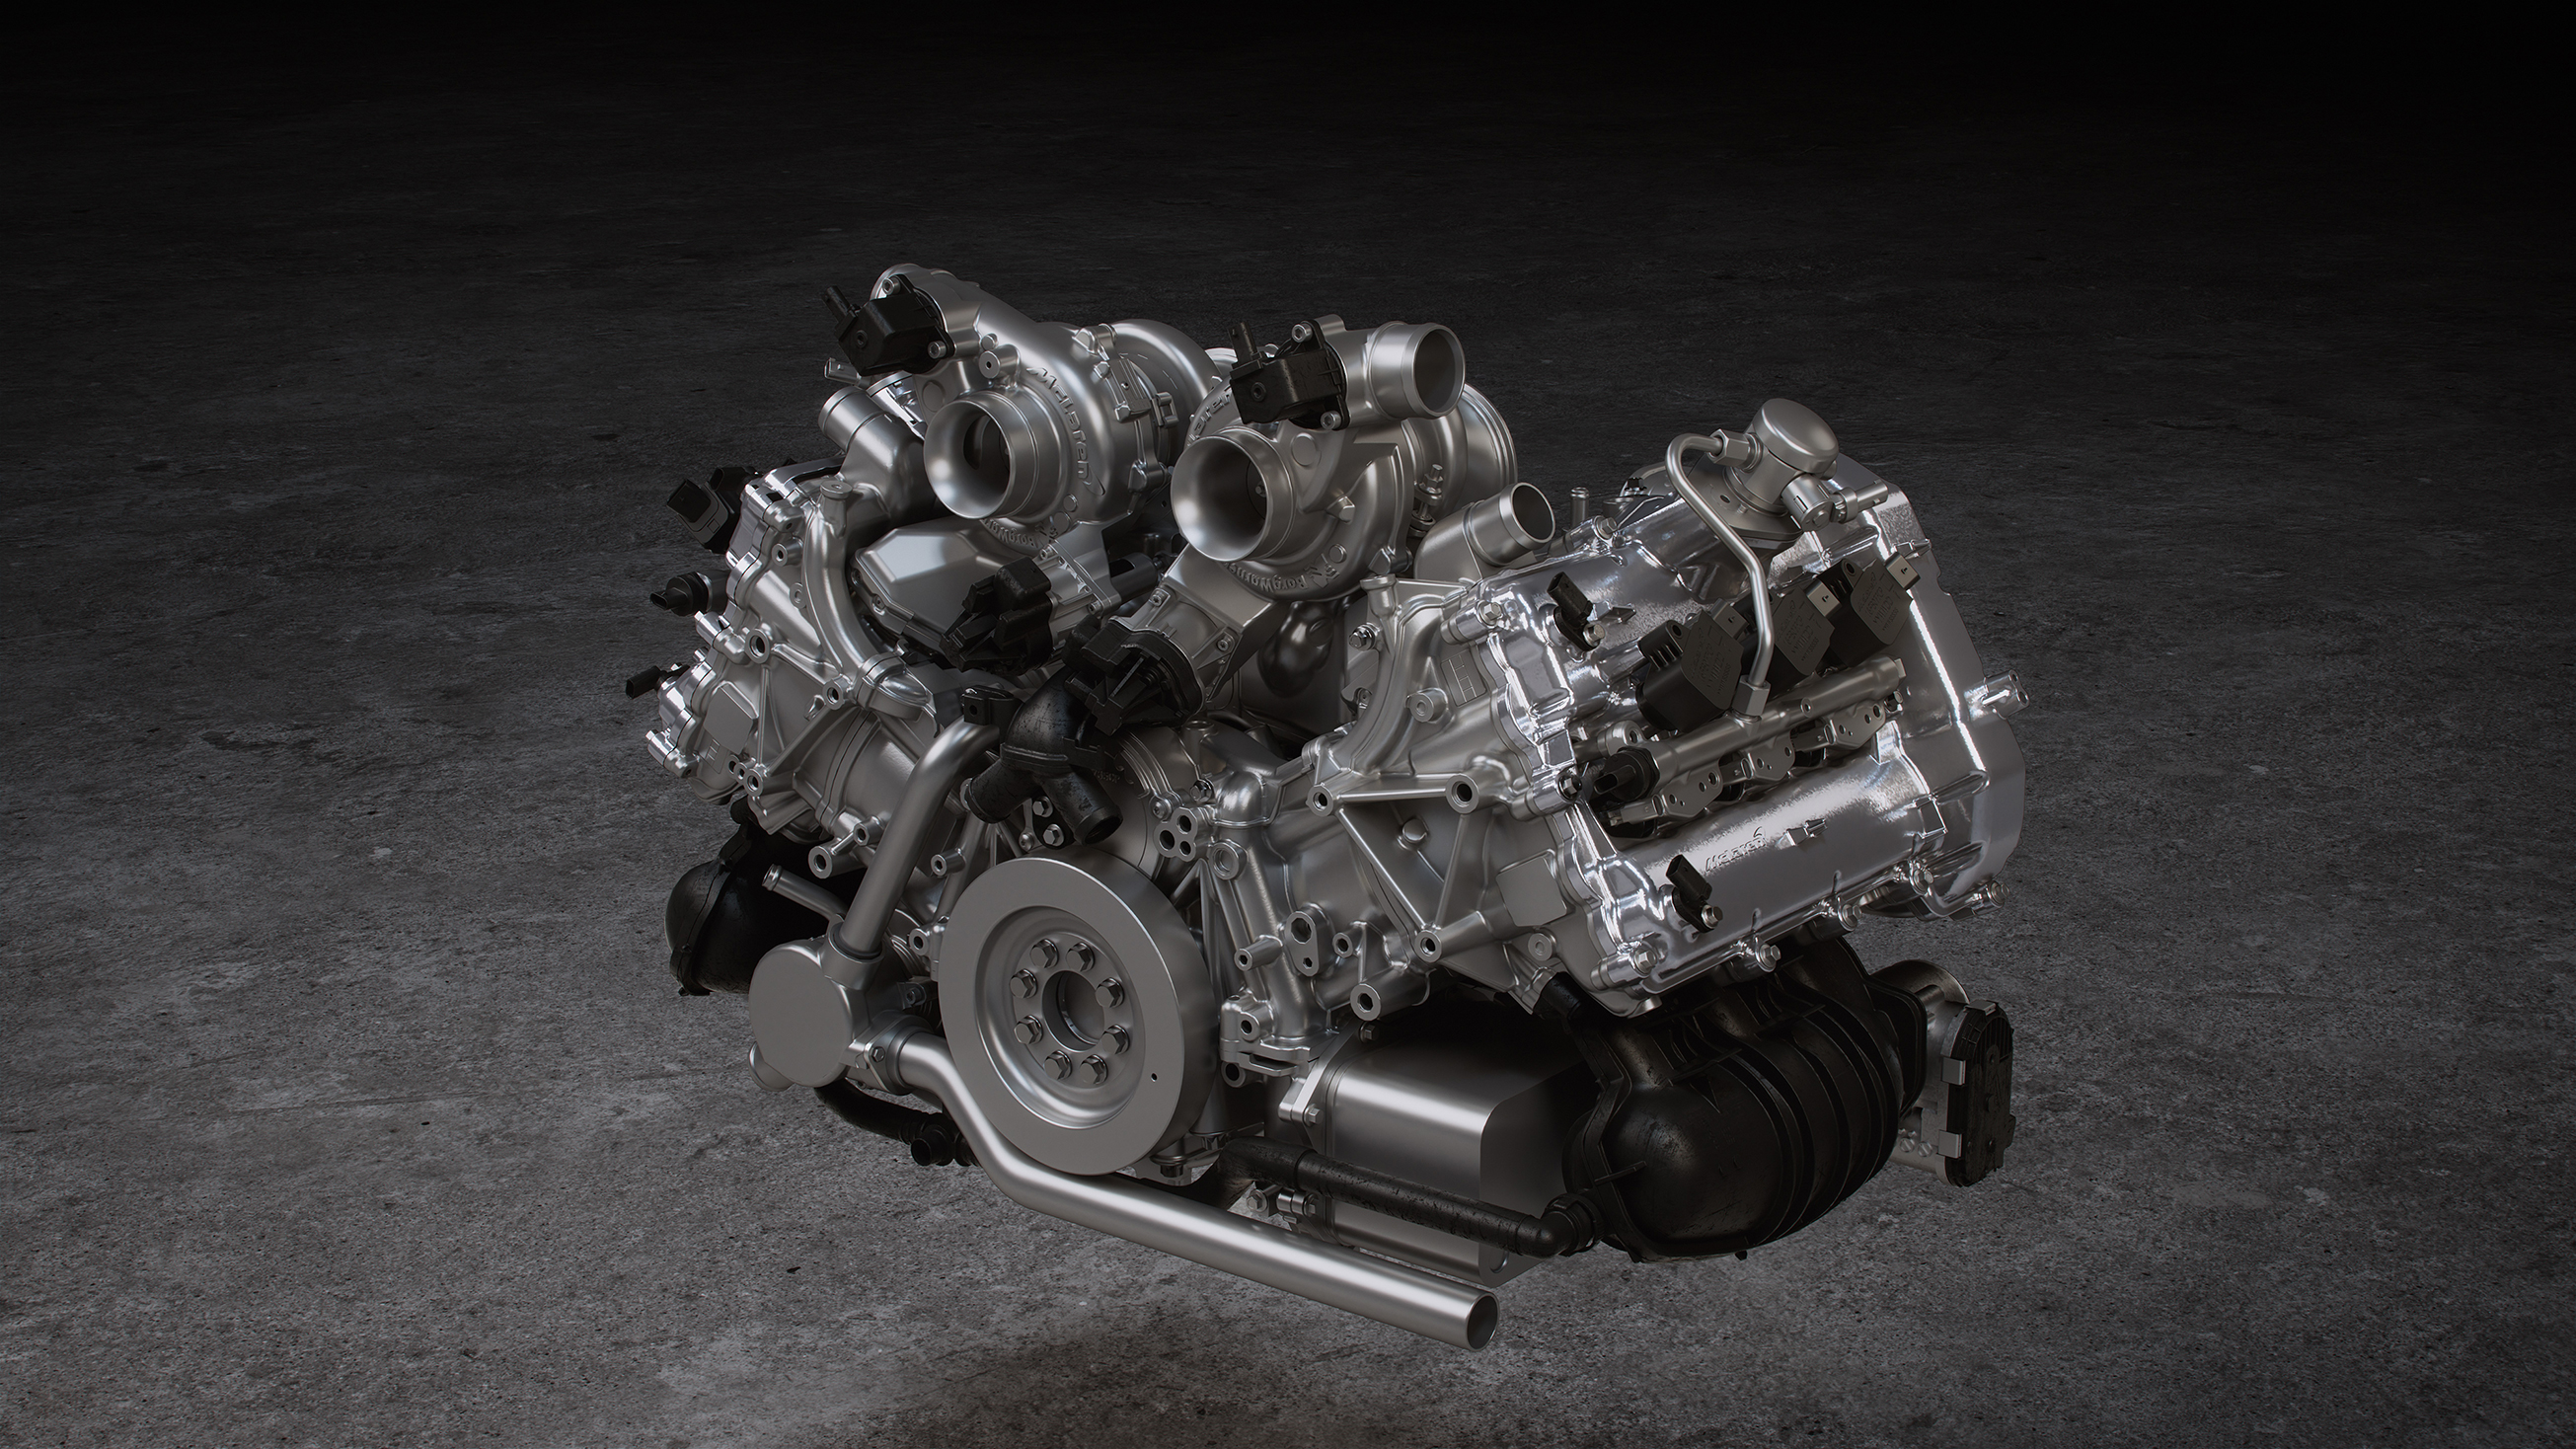 McLaren Artura - 2021 - engine / moteur - M630 V6 3.0L Twin Electrically-Actuated Turbochargers